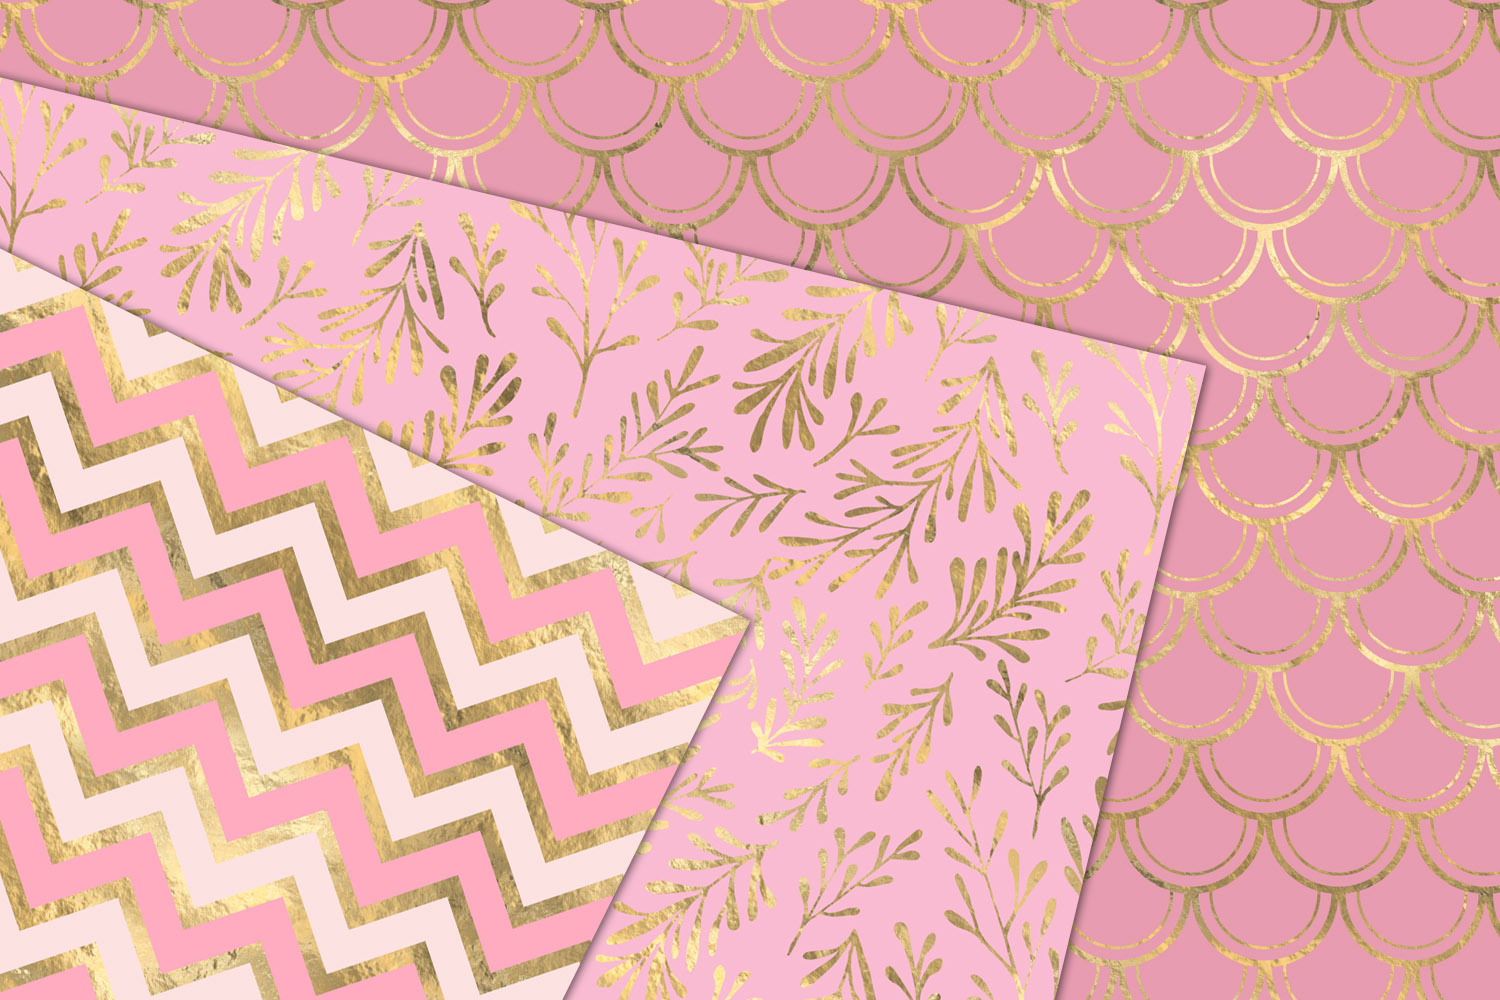 Pink and Gold Mermaid Digital Paper example image 2